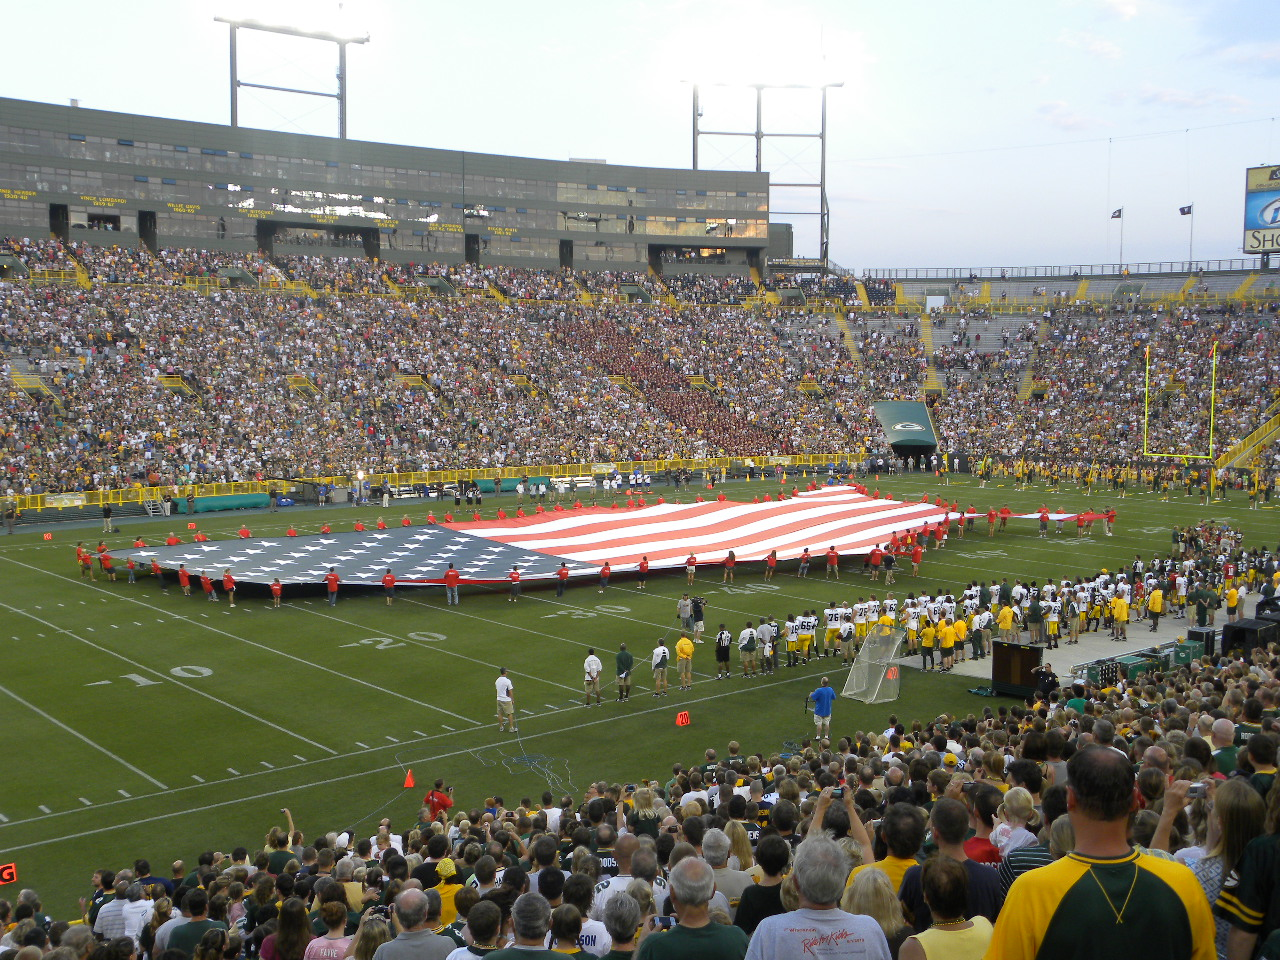 <div class='photo-info'><span class='counter'>24 of 27</span>Posted Aug 08, 2010</div><div class='photo-title'>Opening Ceremonies</div><div class='photo-body'>American Flag</div>